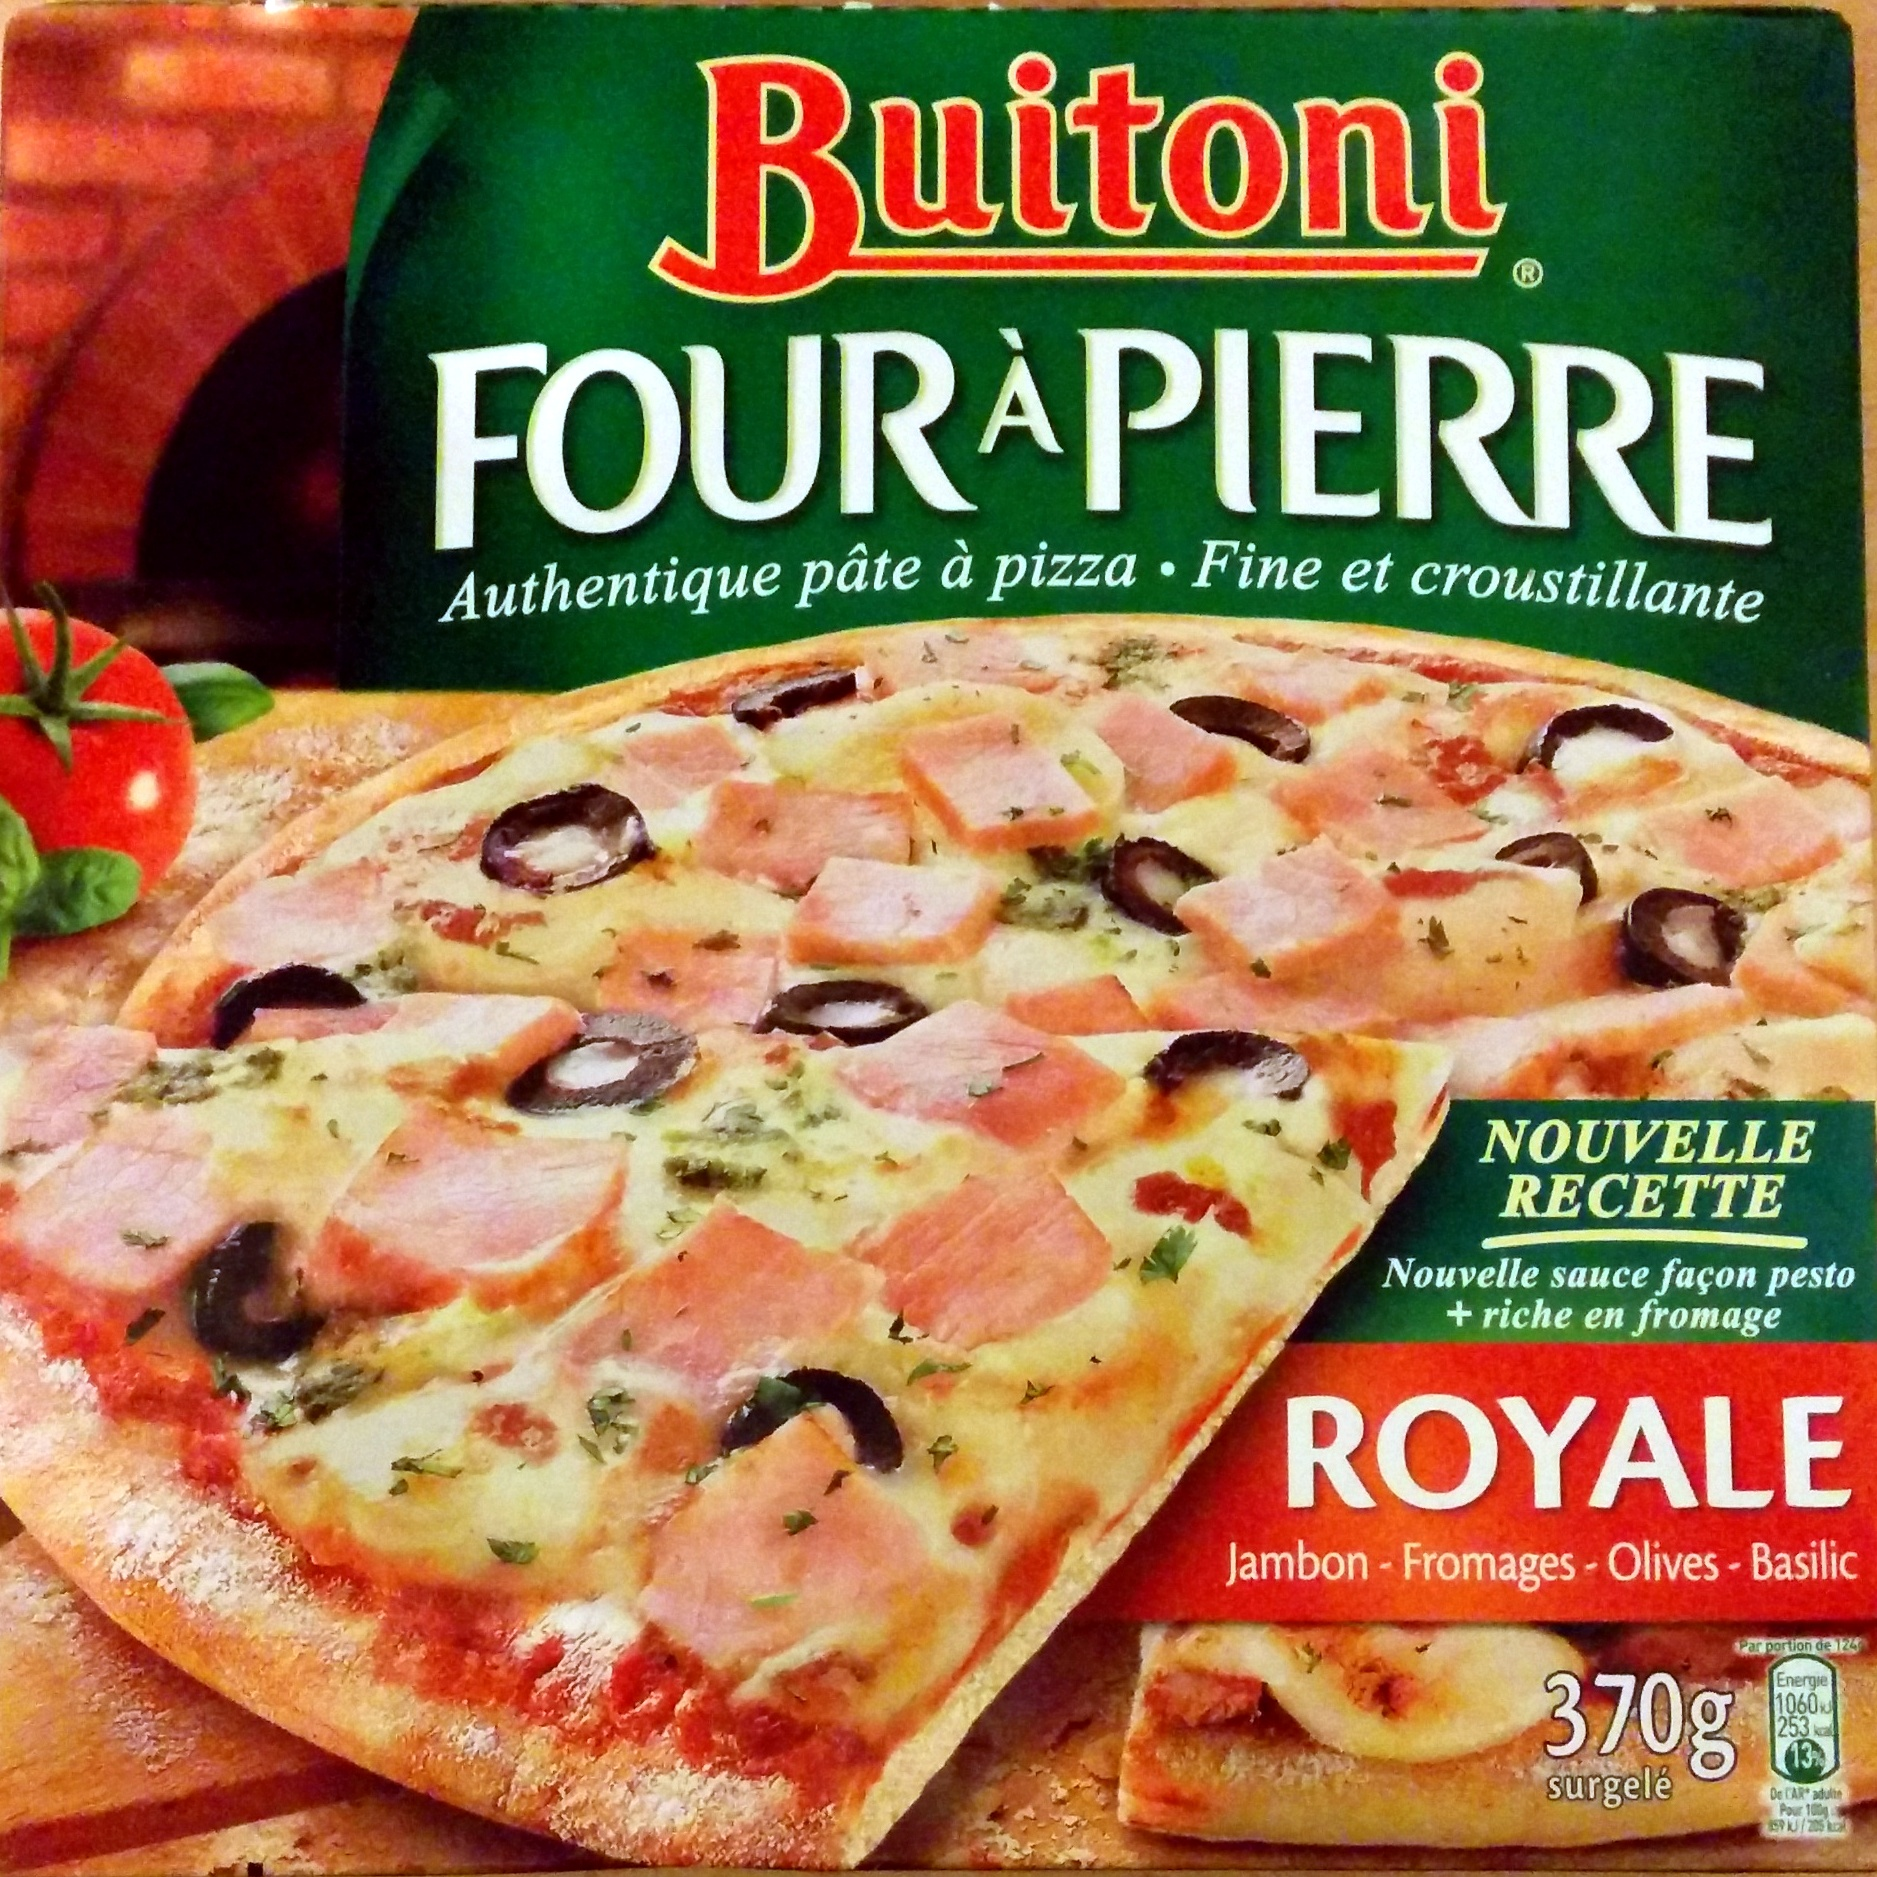 Buitoni Four à Pierre Royale - Product